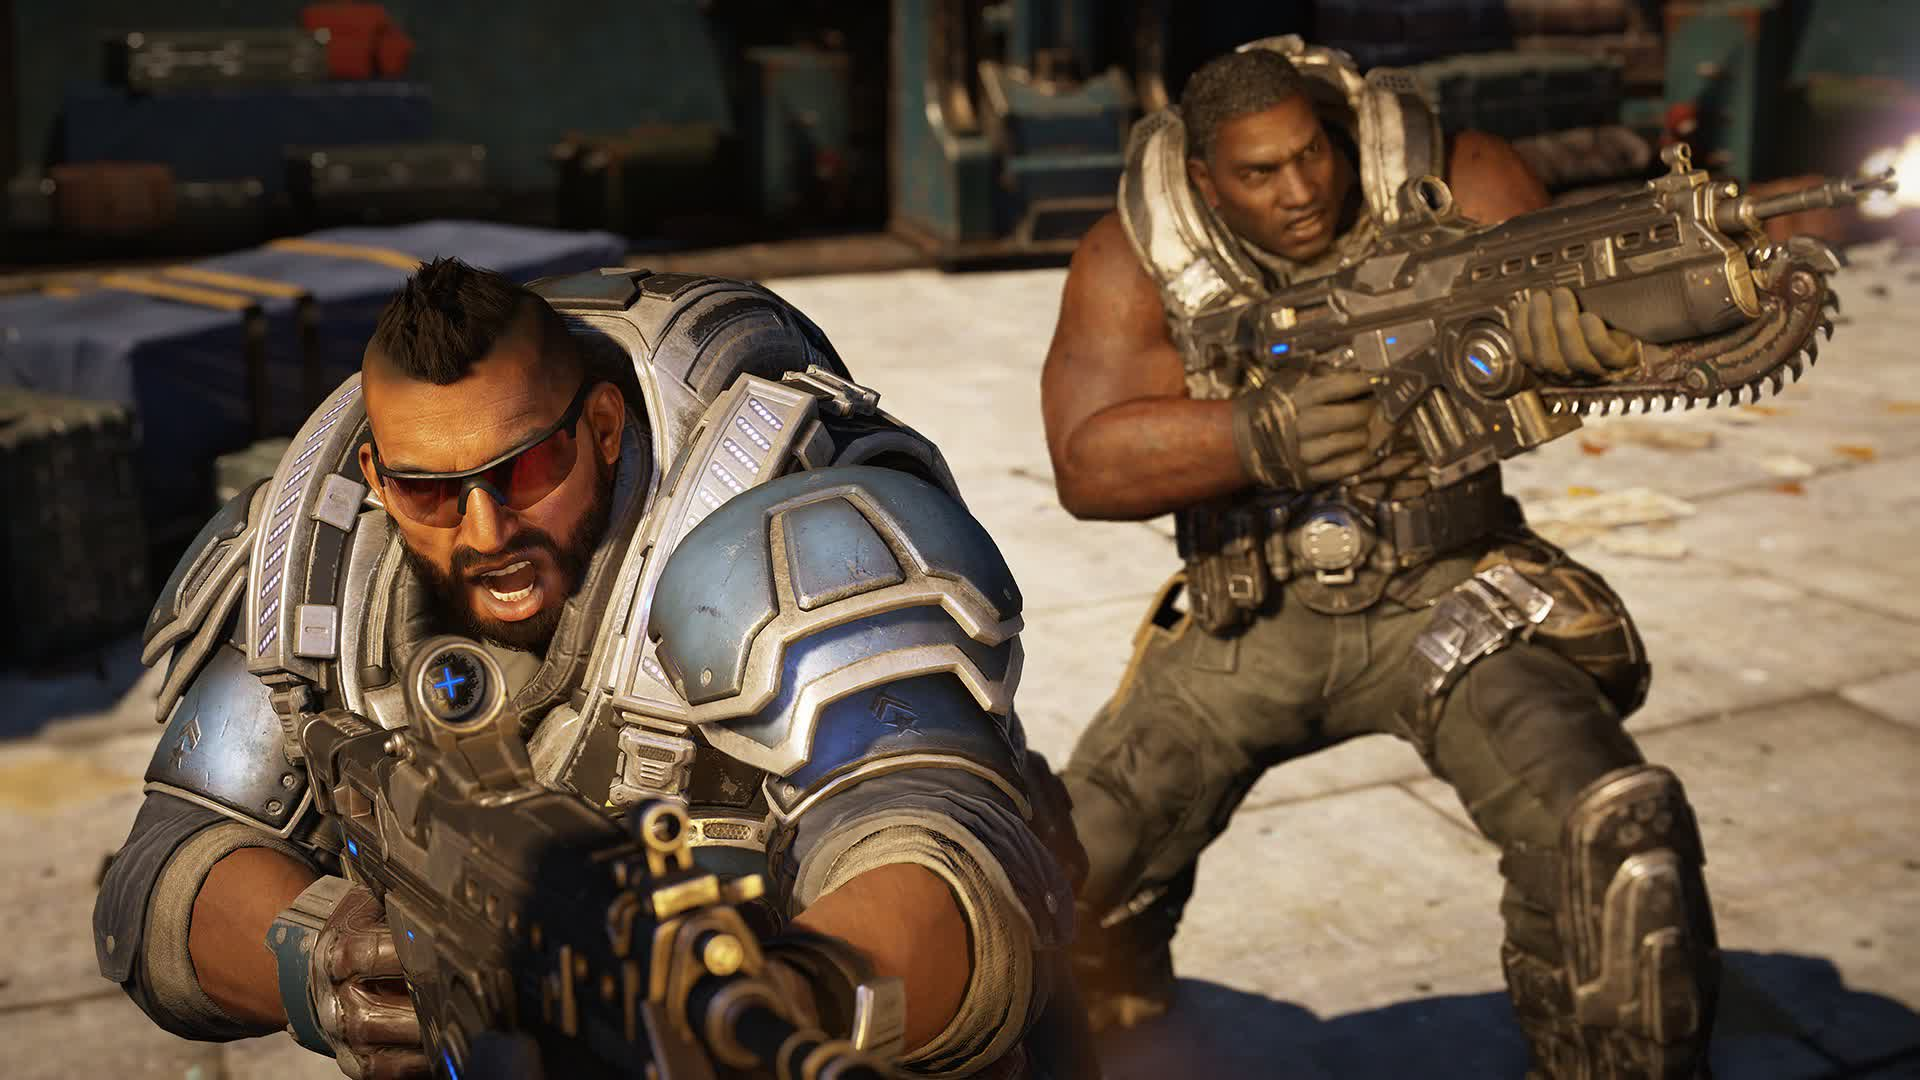 Gears of War dev says next entry will use Unreal Engine 5, denies it is working on Star Wars game